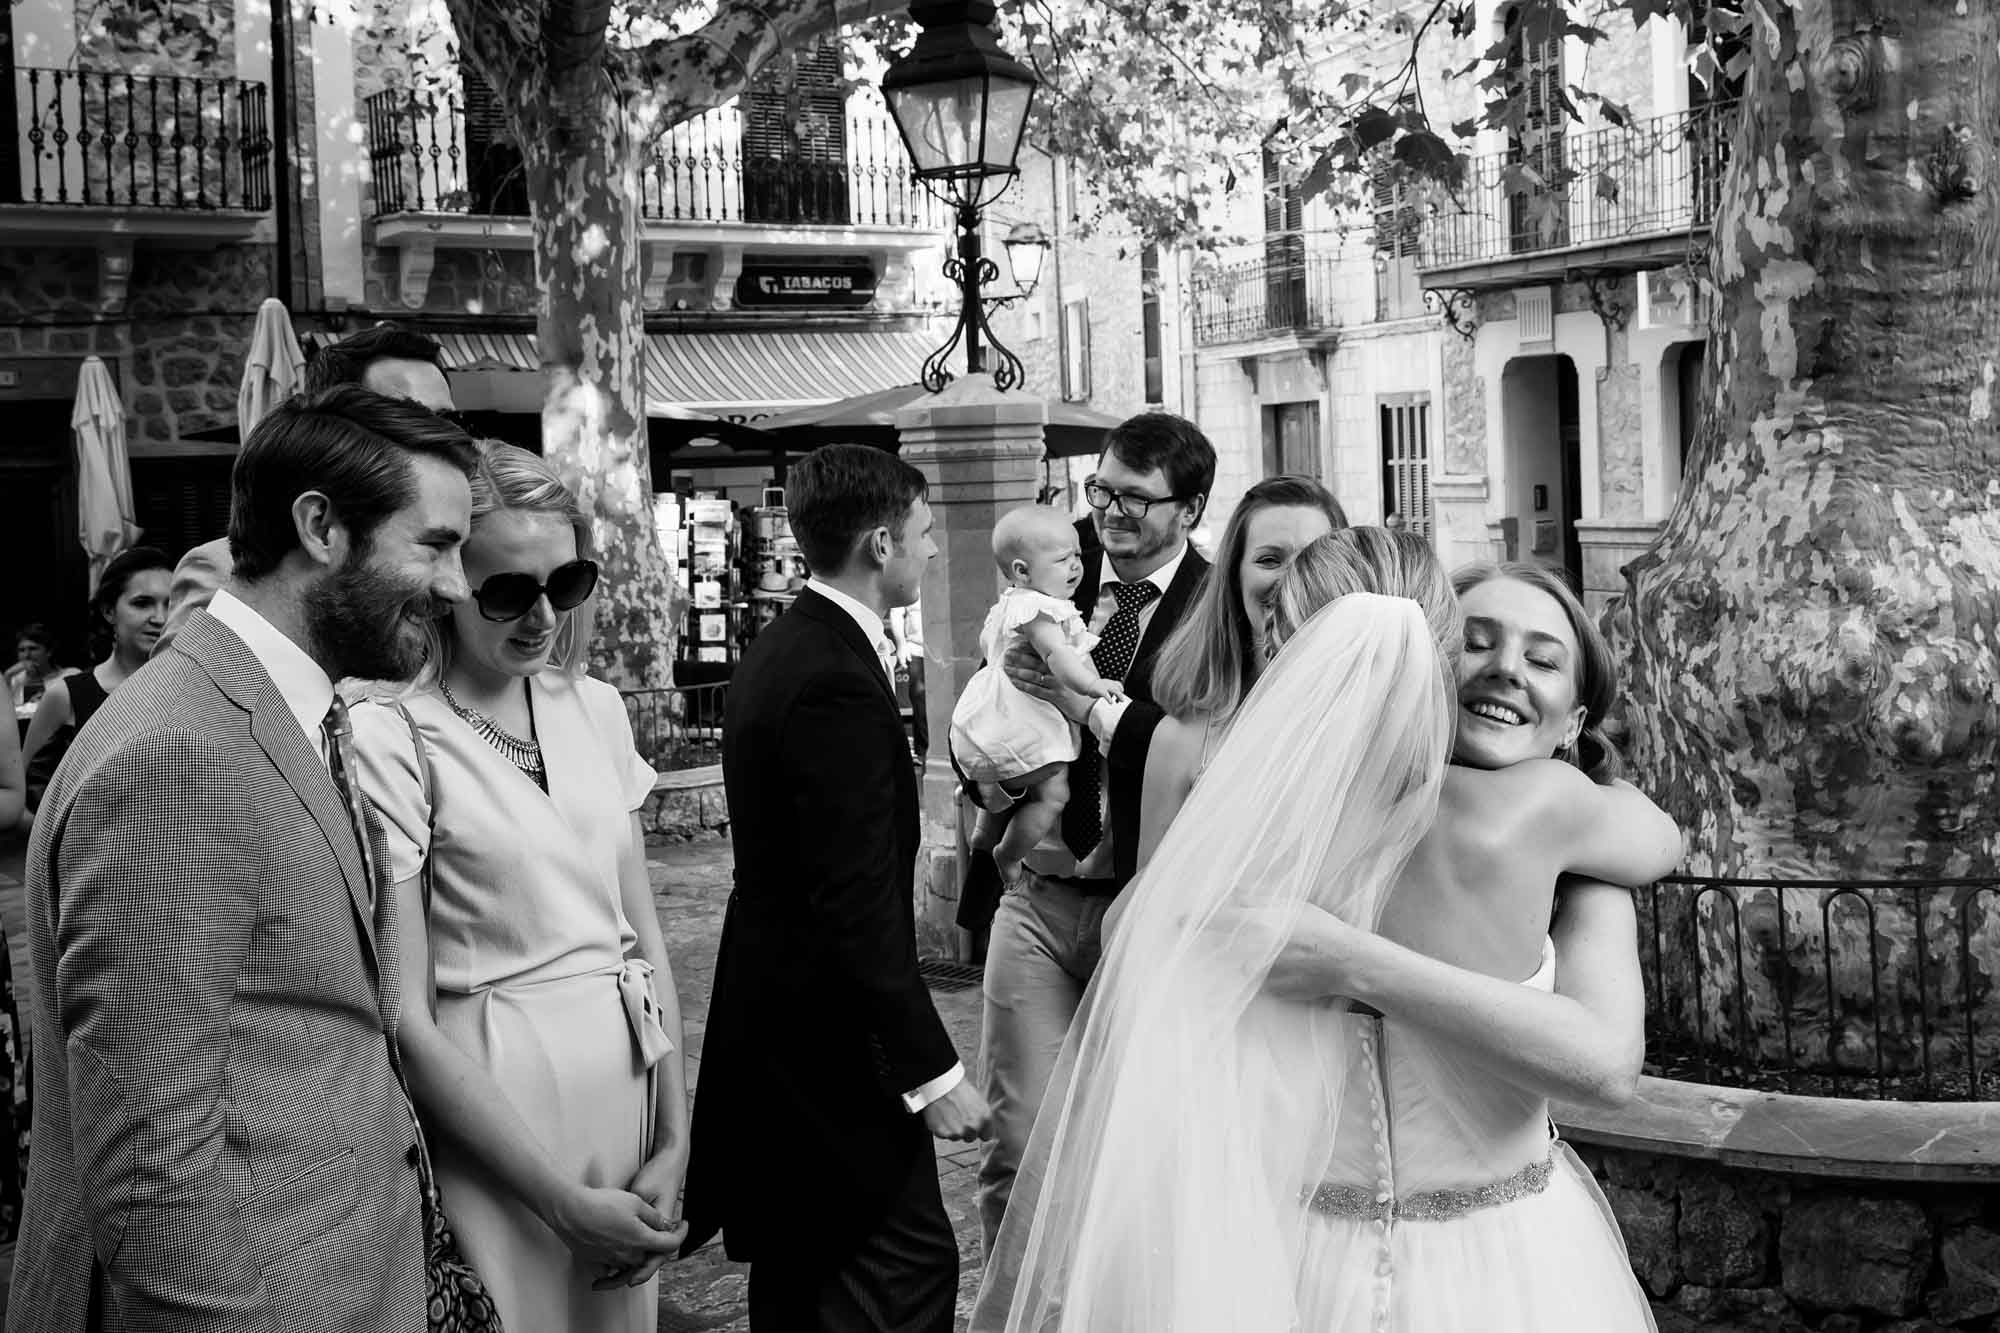 The bride hugs guests in the Plaza Major in Fornalutx, Mallorca